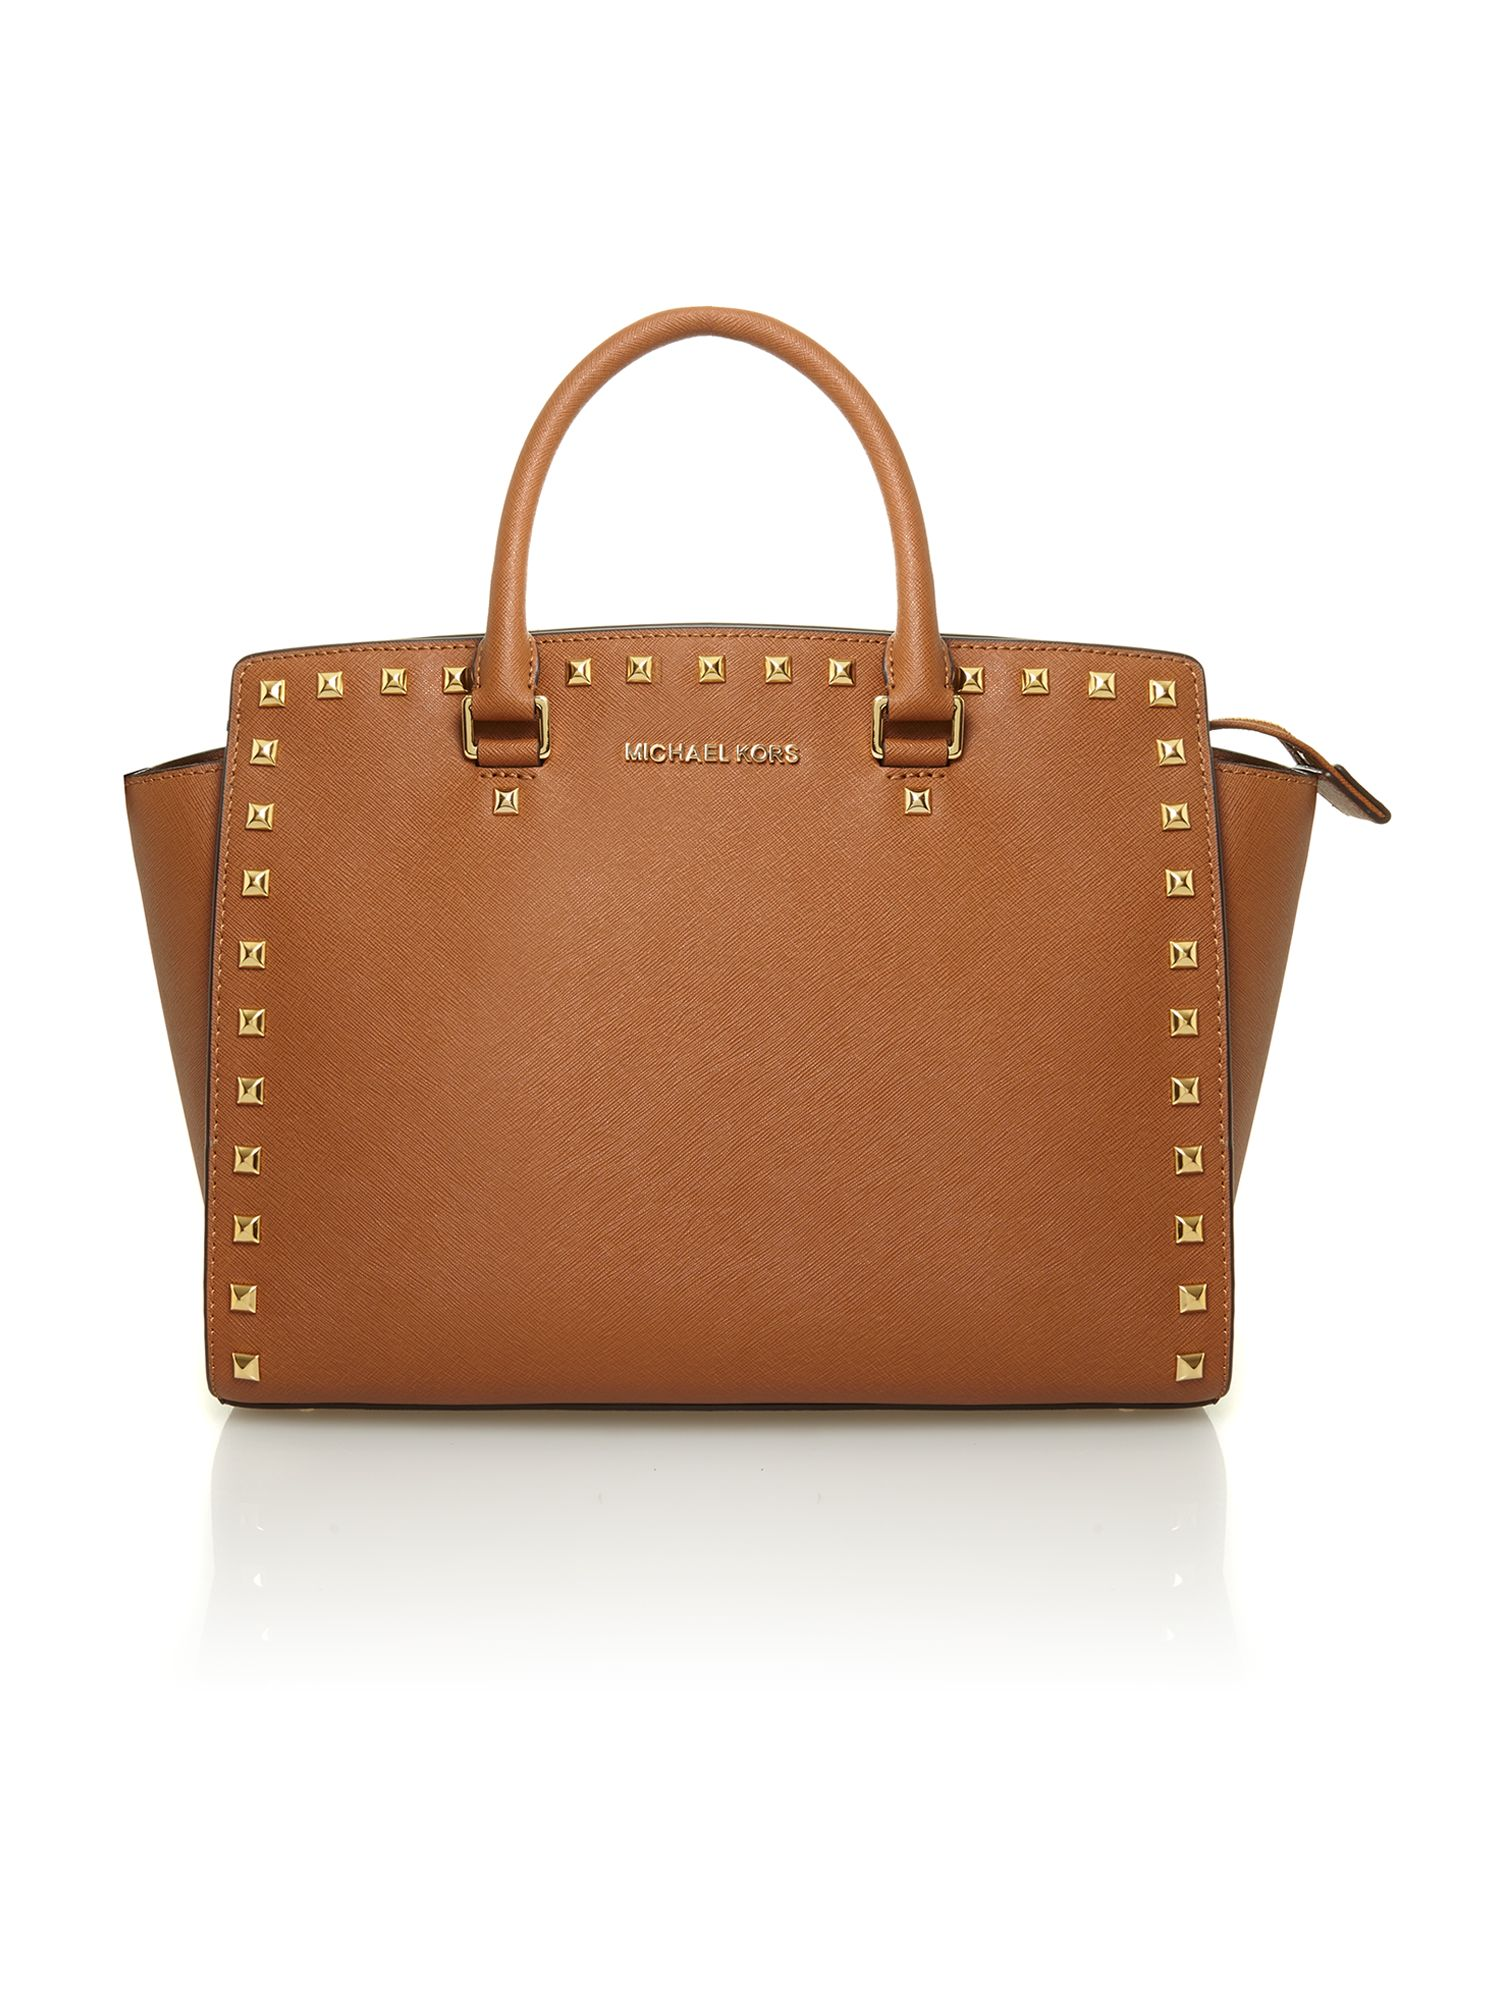 Selma stud brown tote bag